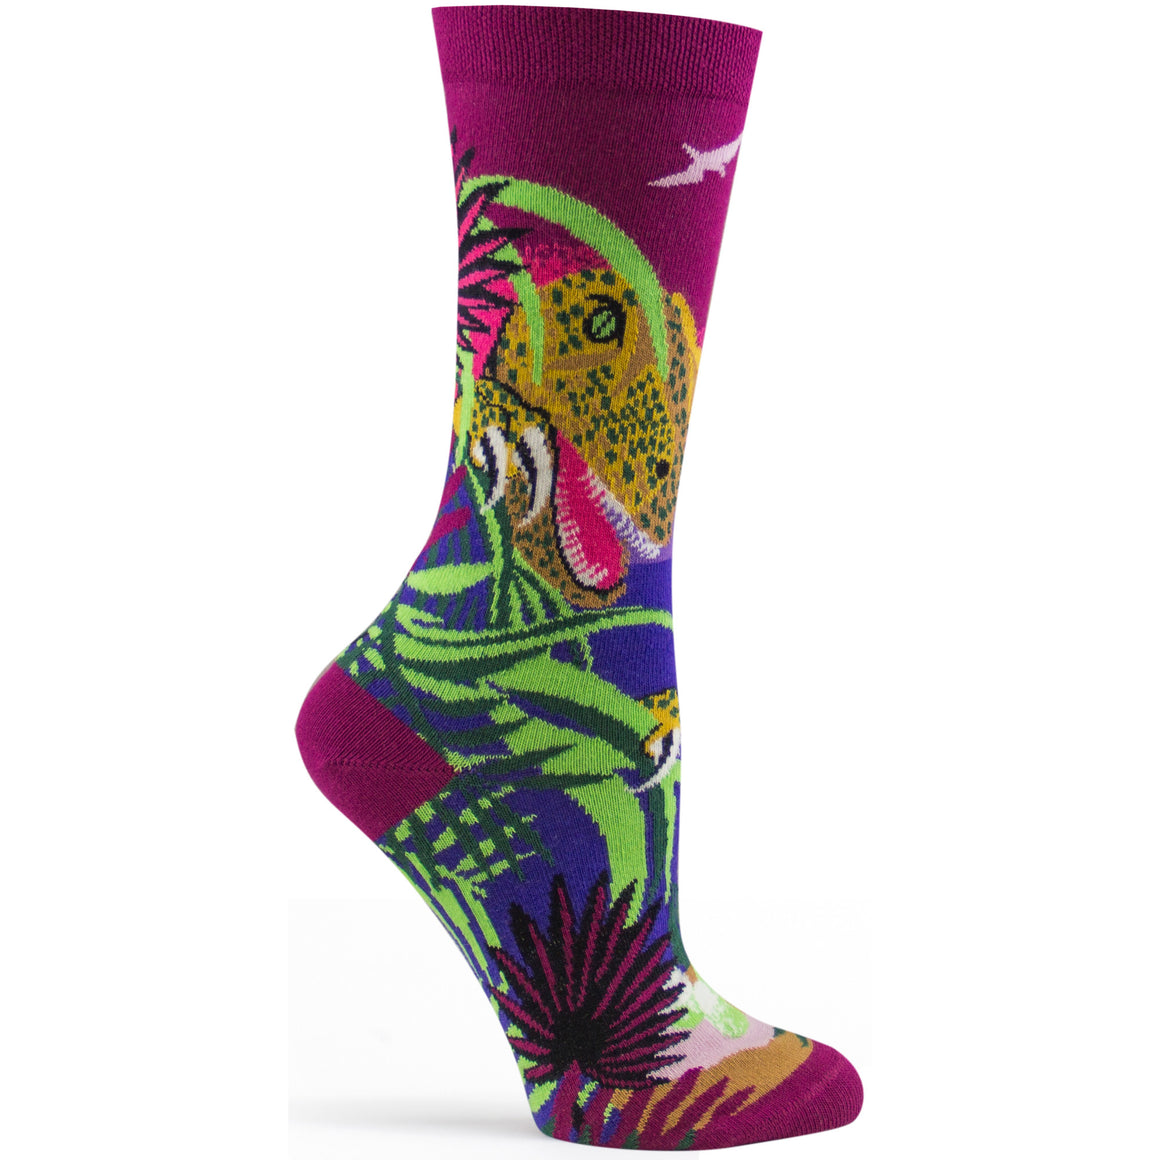 T-Rex Dinosaur Sock in Eggplant size 9-11 womens novelty from ozone socks